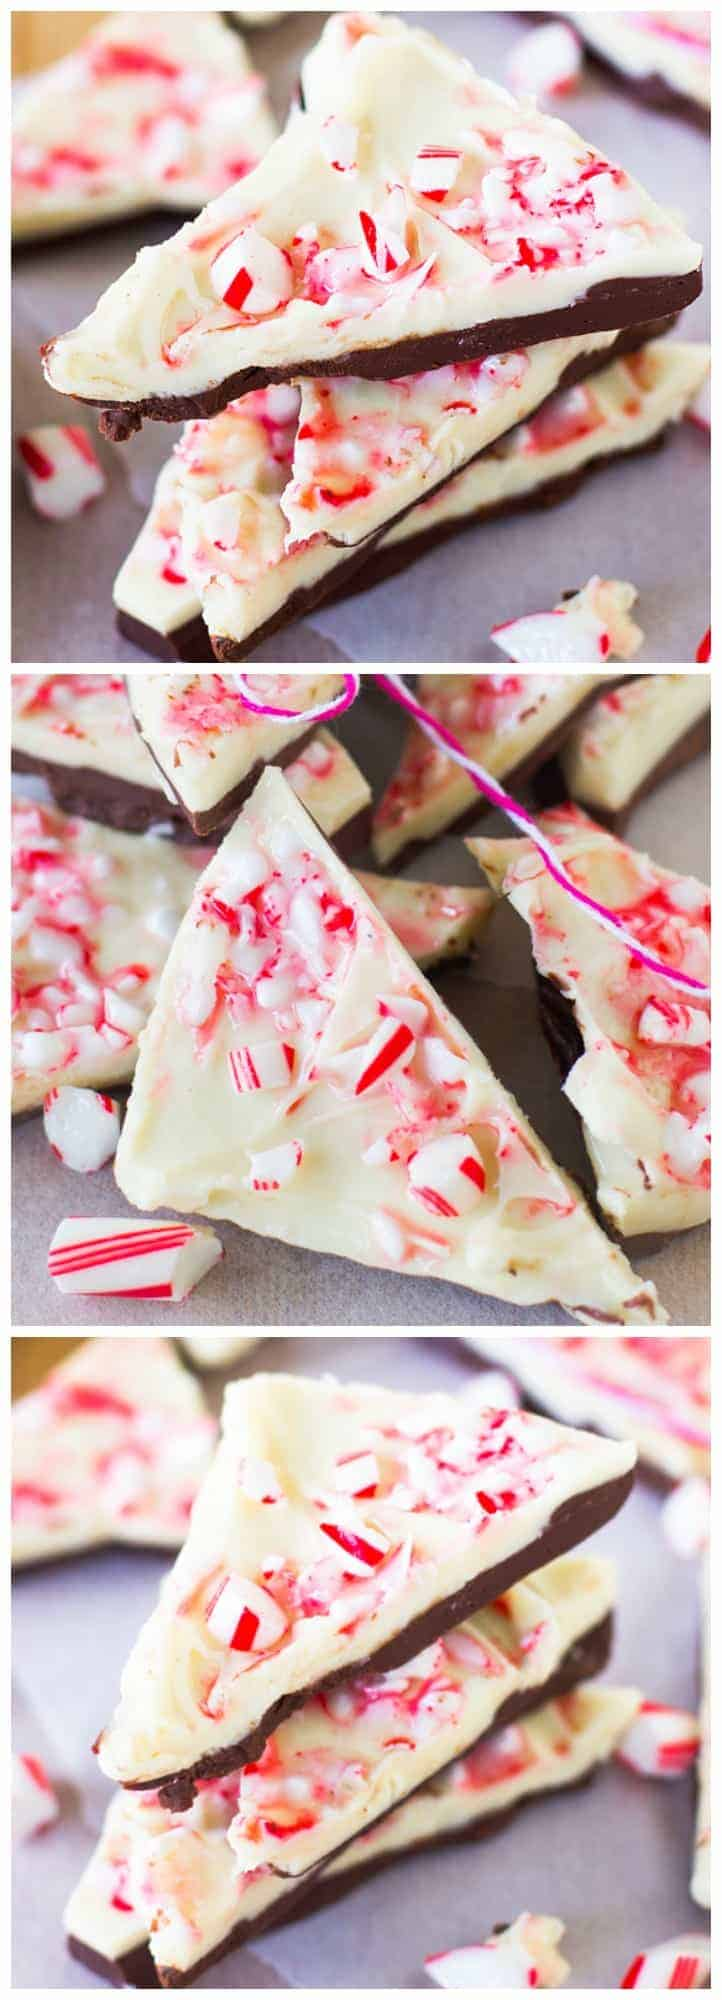 This White Chocolate Peppermint Bark is so easy to make it's barely a recipe. It's a MUST for Christmas!